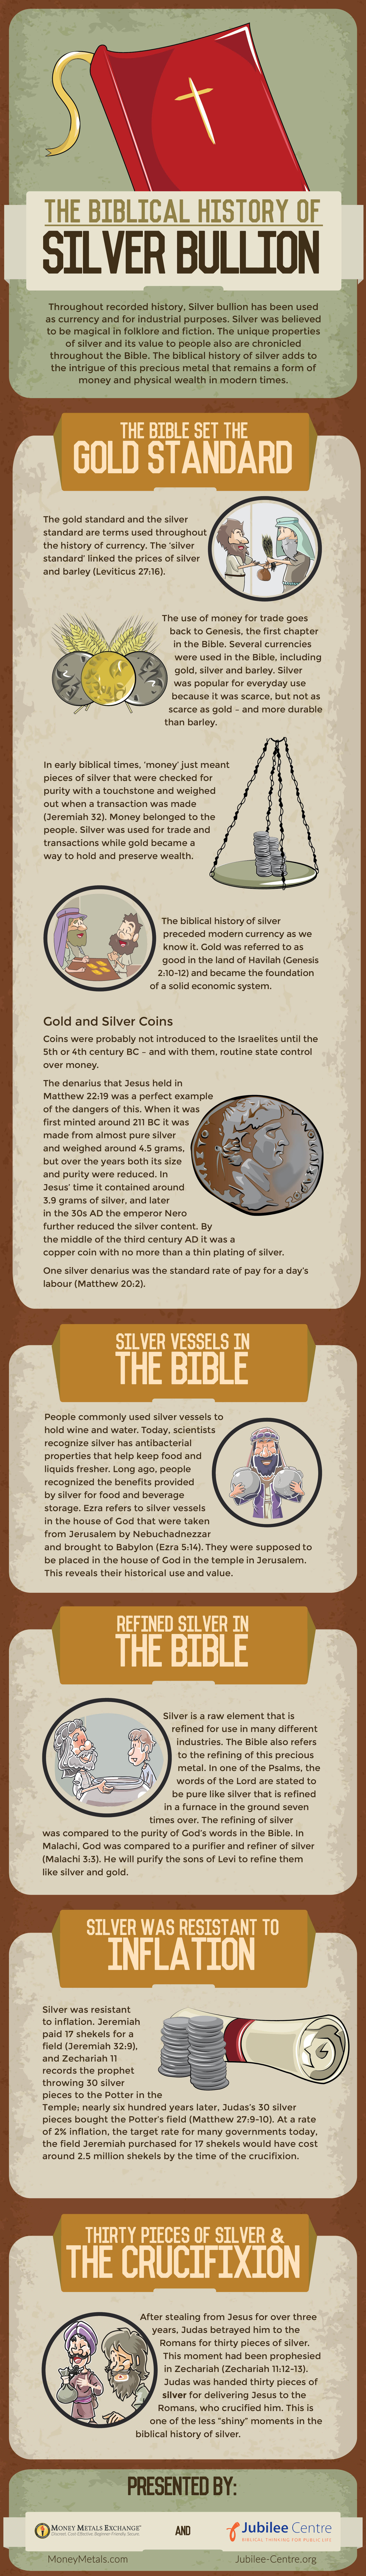 http://www.gracecentered.com/history-silver-bible.htm